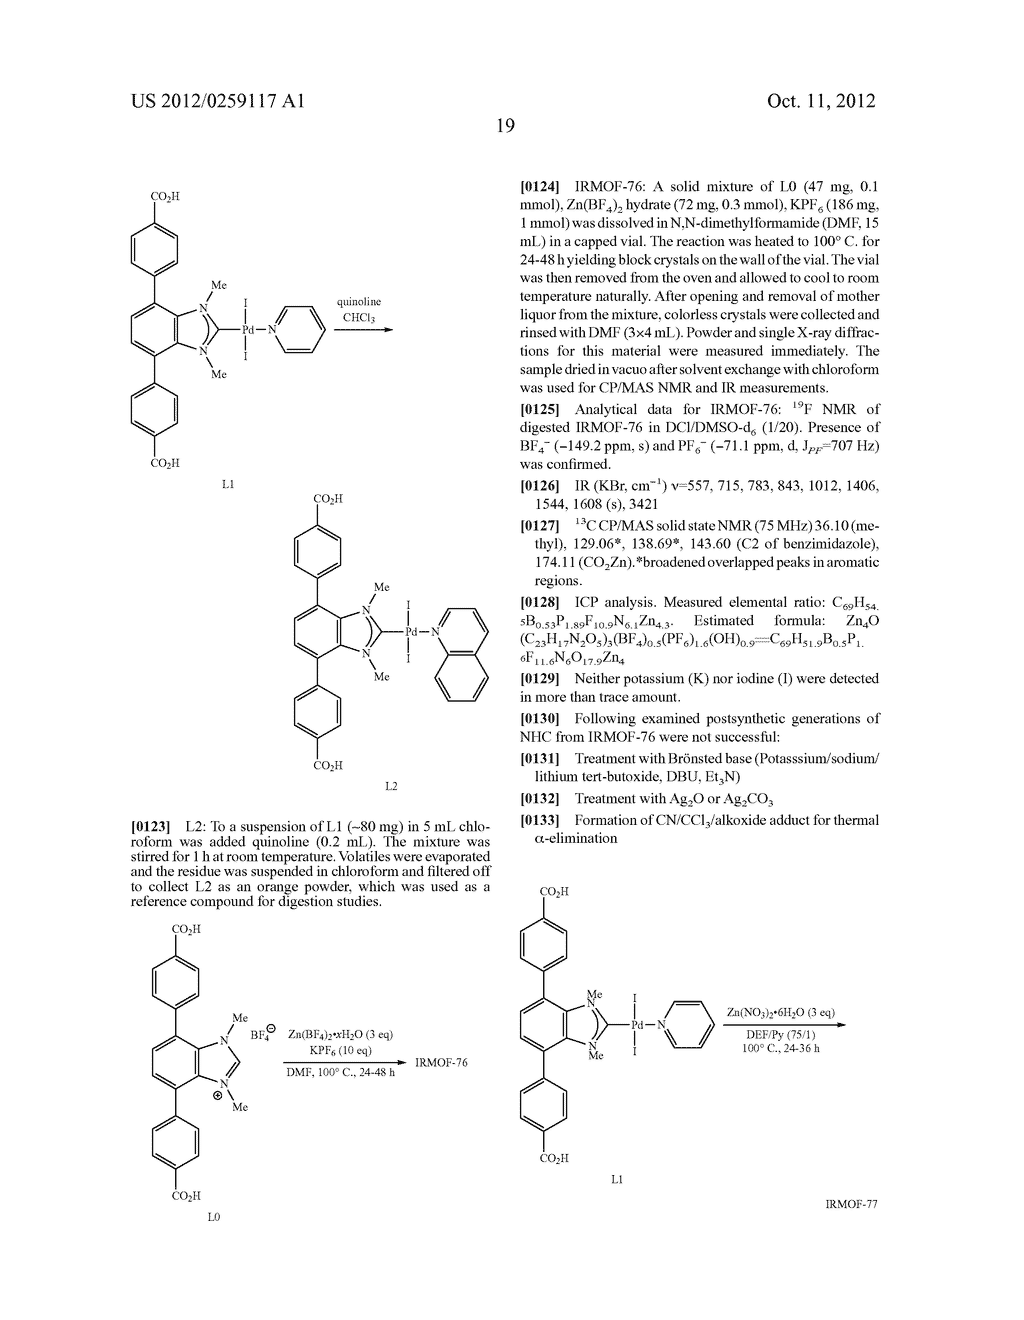 ORGANO-METALLIC FRAMEWORKS AND METHODS OF MAKING SAME - diagram, schematic, and image 38